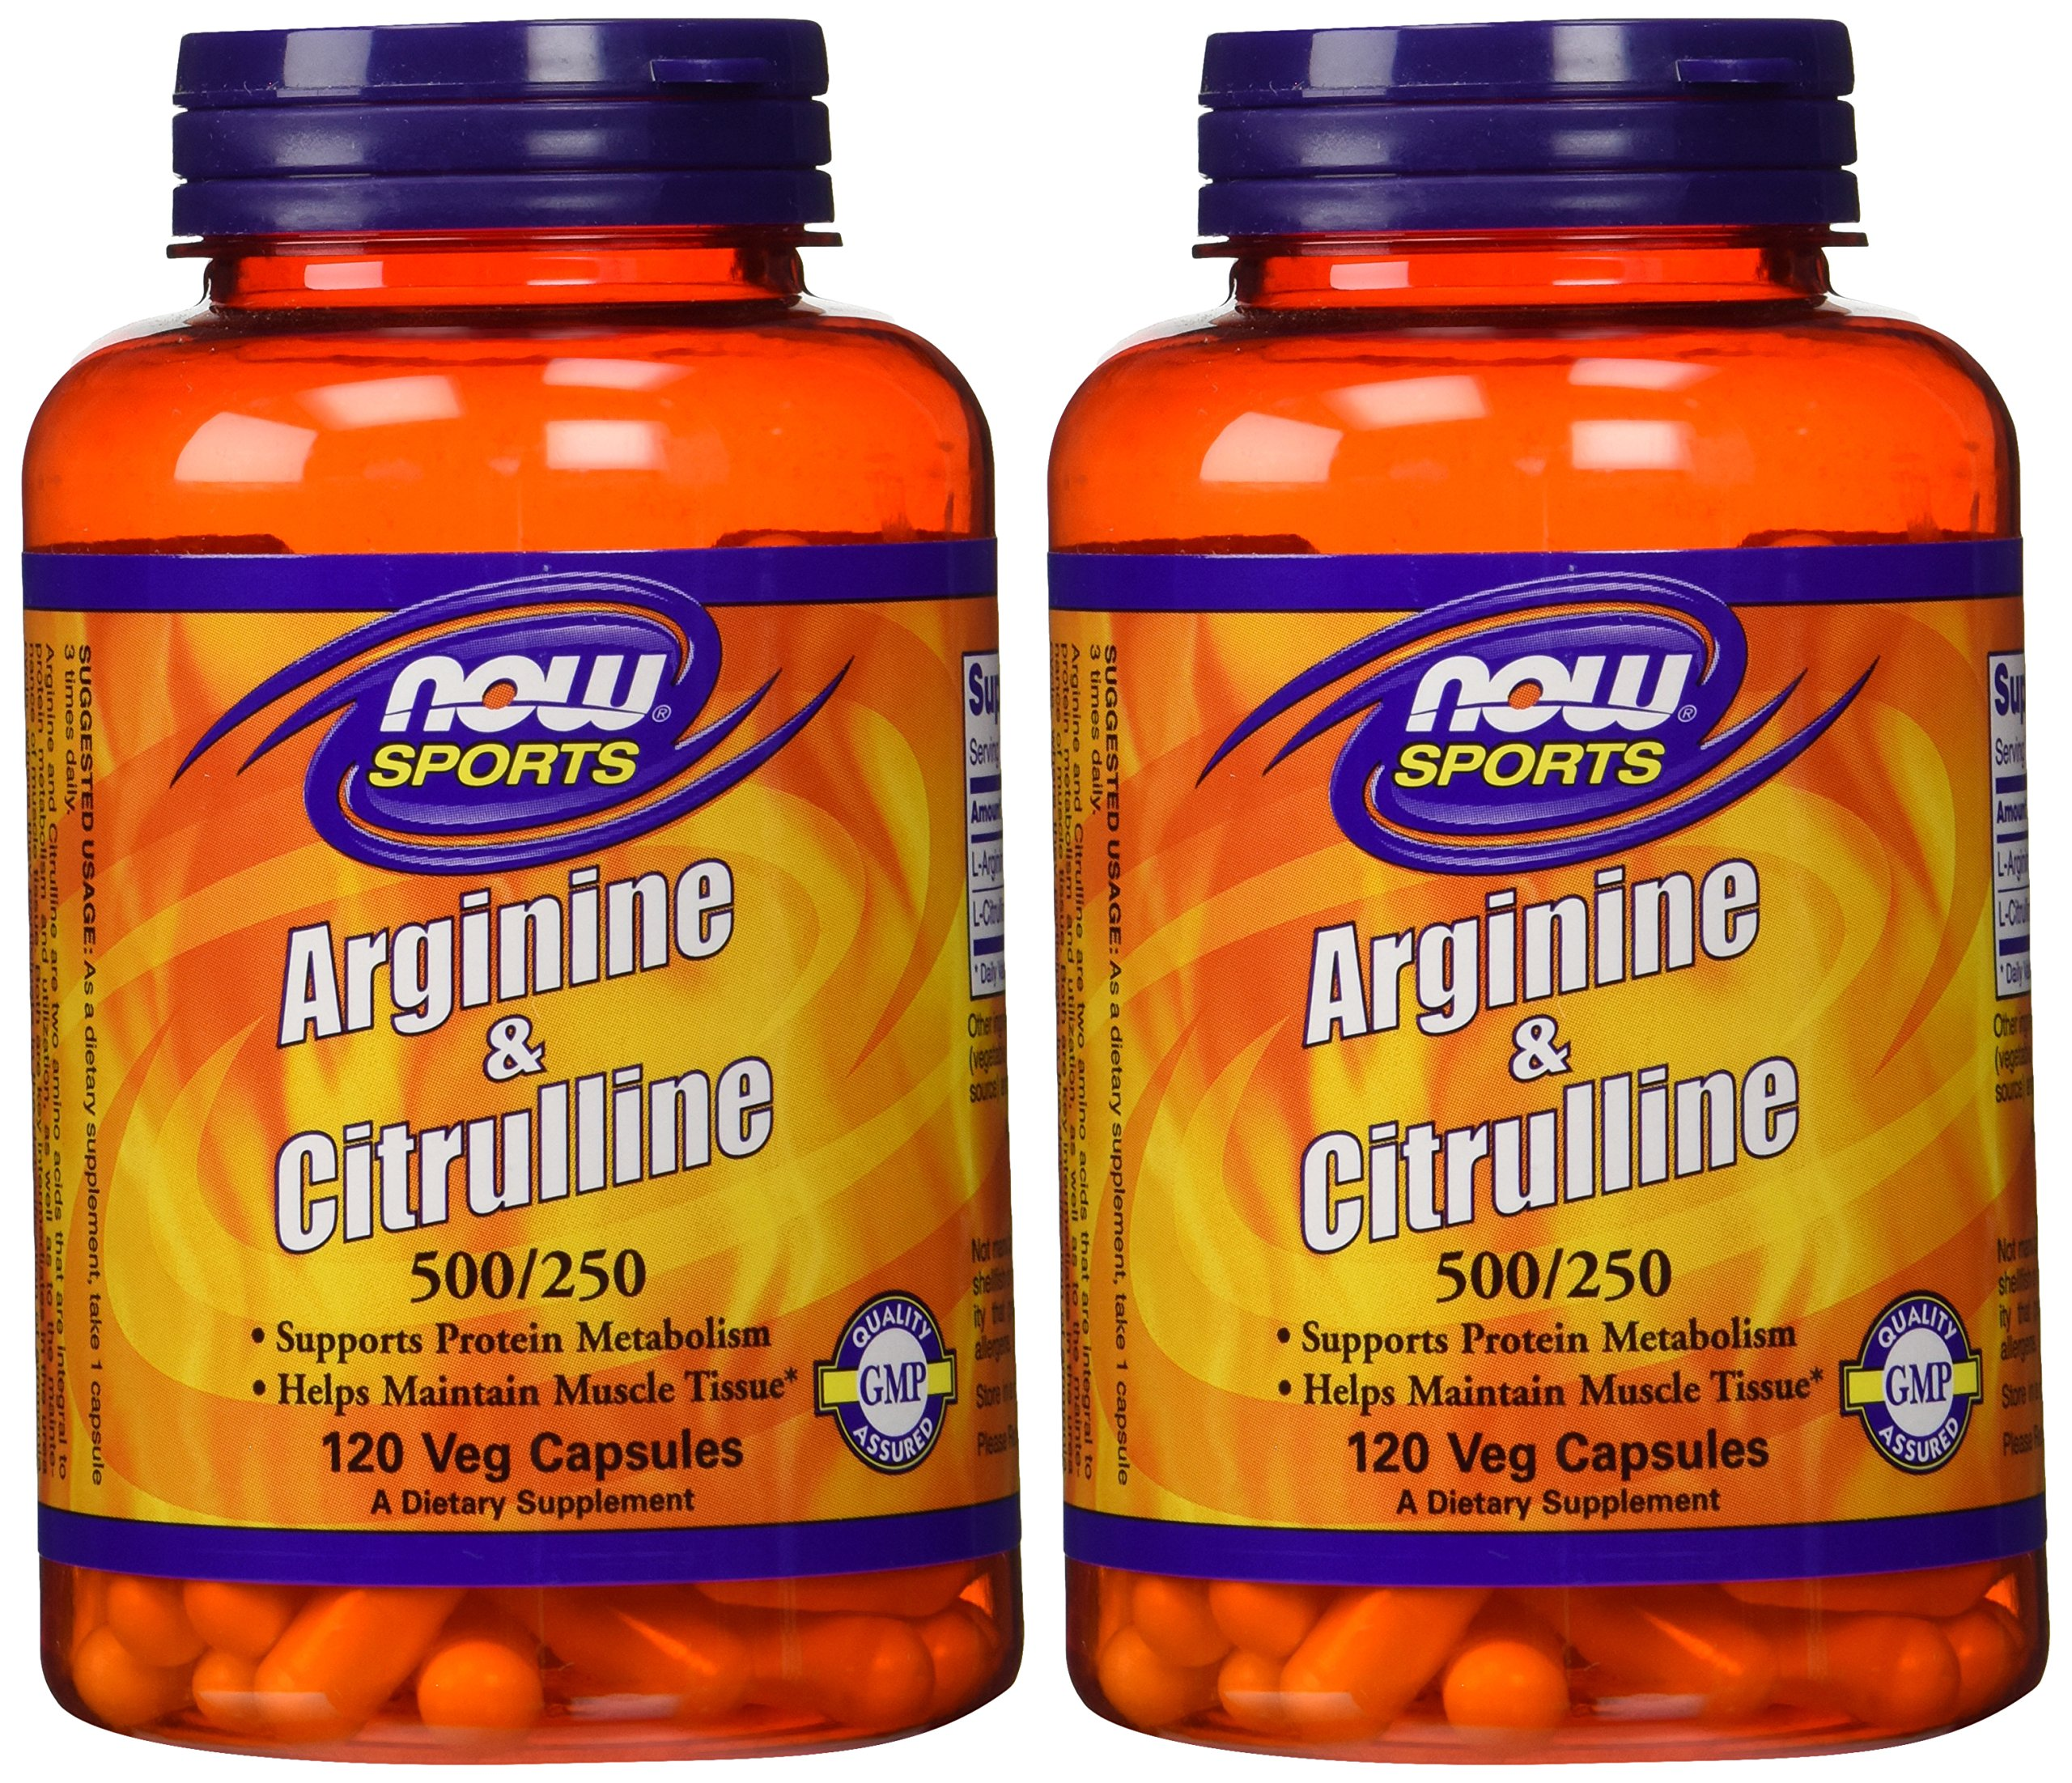 Arginine & Citrulline 500/250mg - 120 Capsules (2 Pack) by NOW Foods